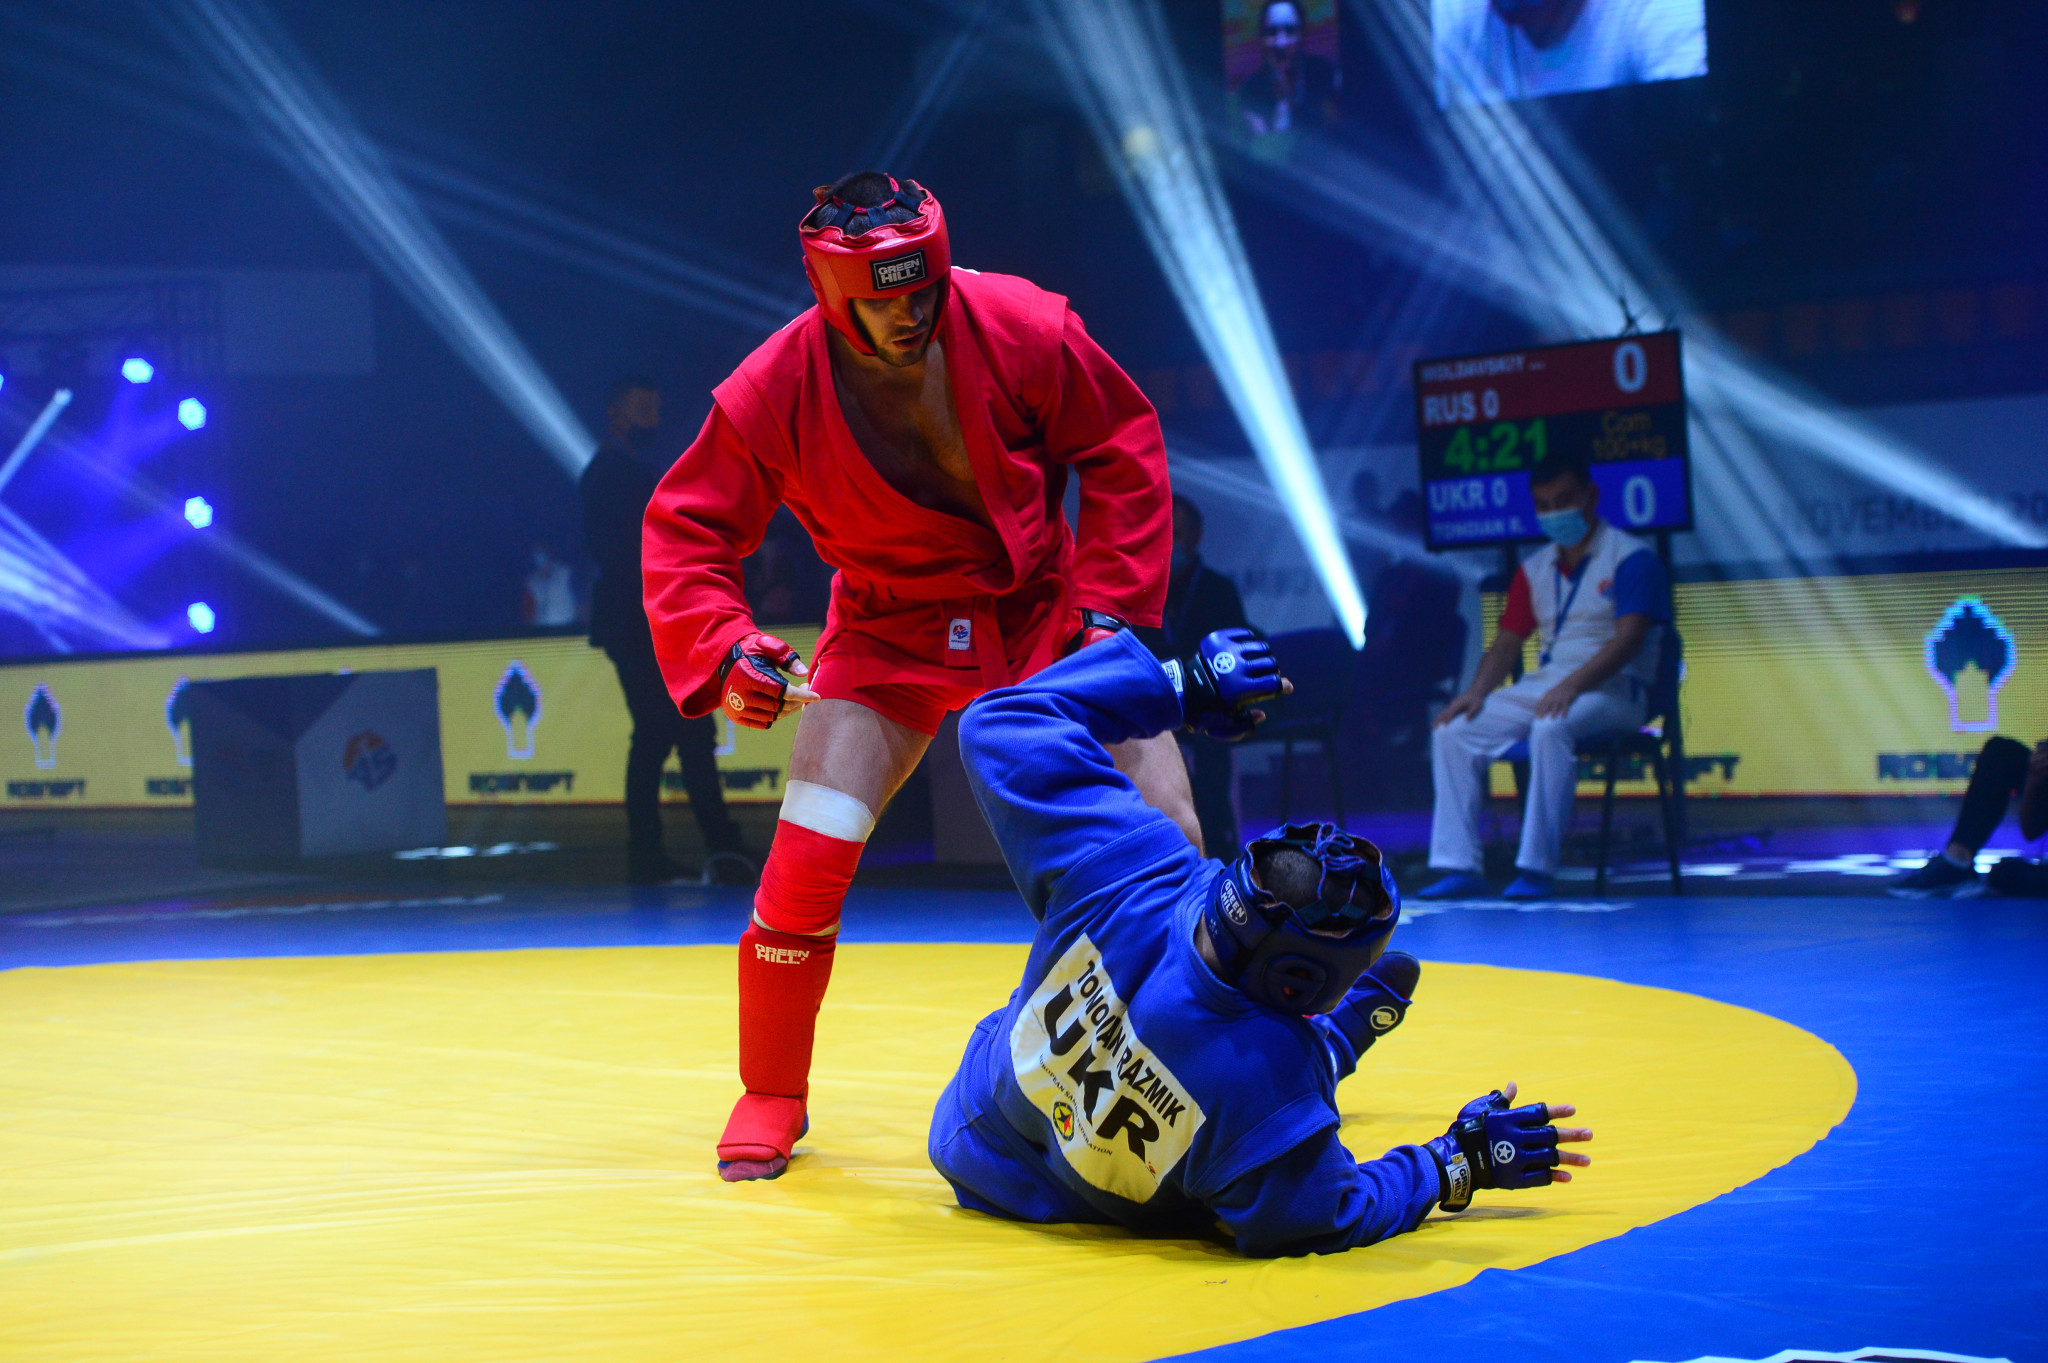 Valentin Moldavskiy, red, of Russia, thumped his opponent Razmik Tonoian of Ukraine in the combat sambo over-100kg final ©FIAS